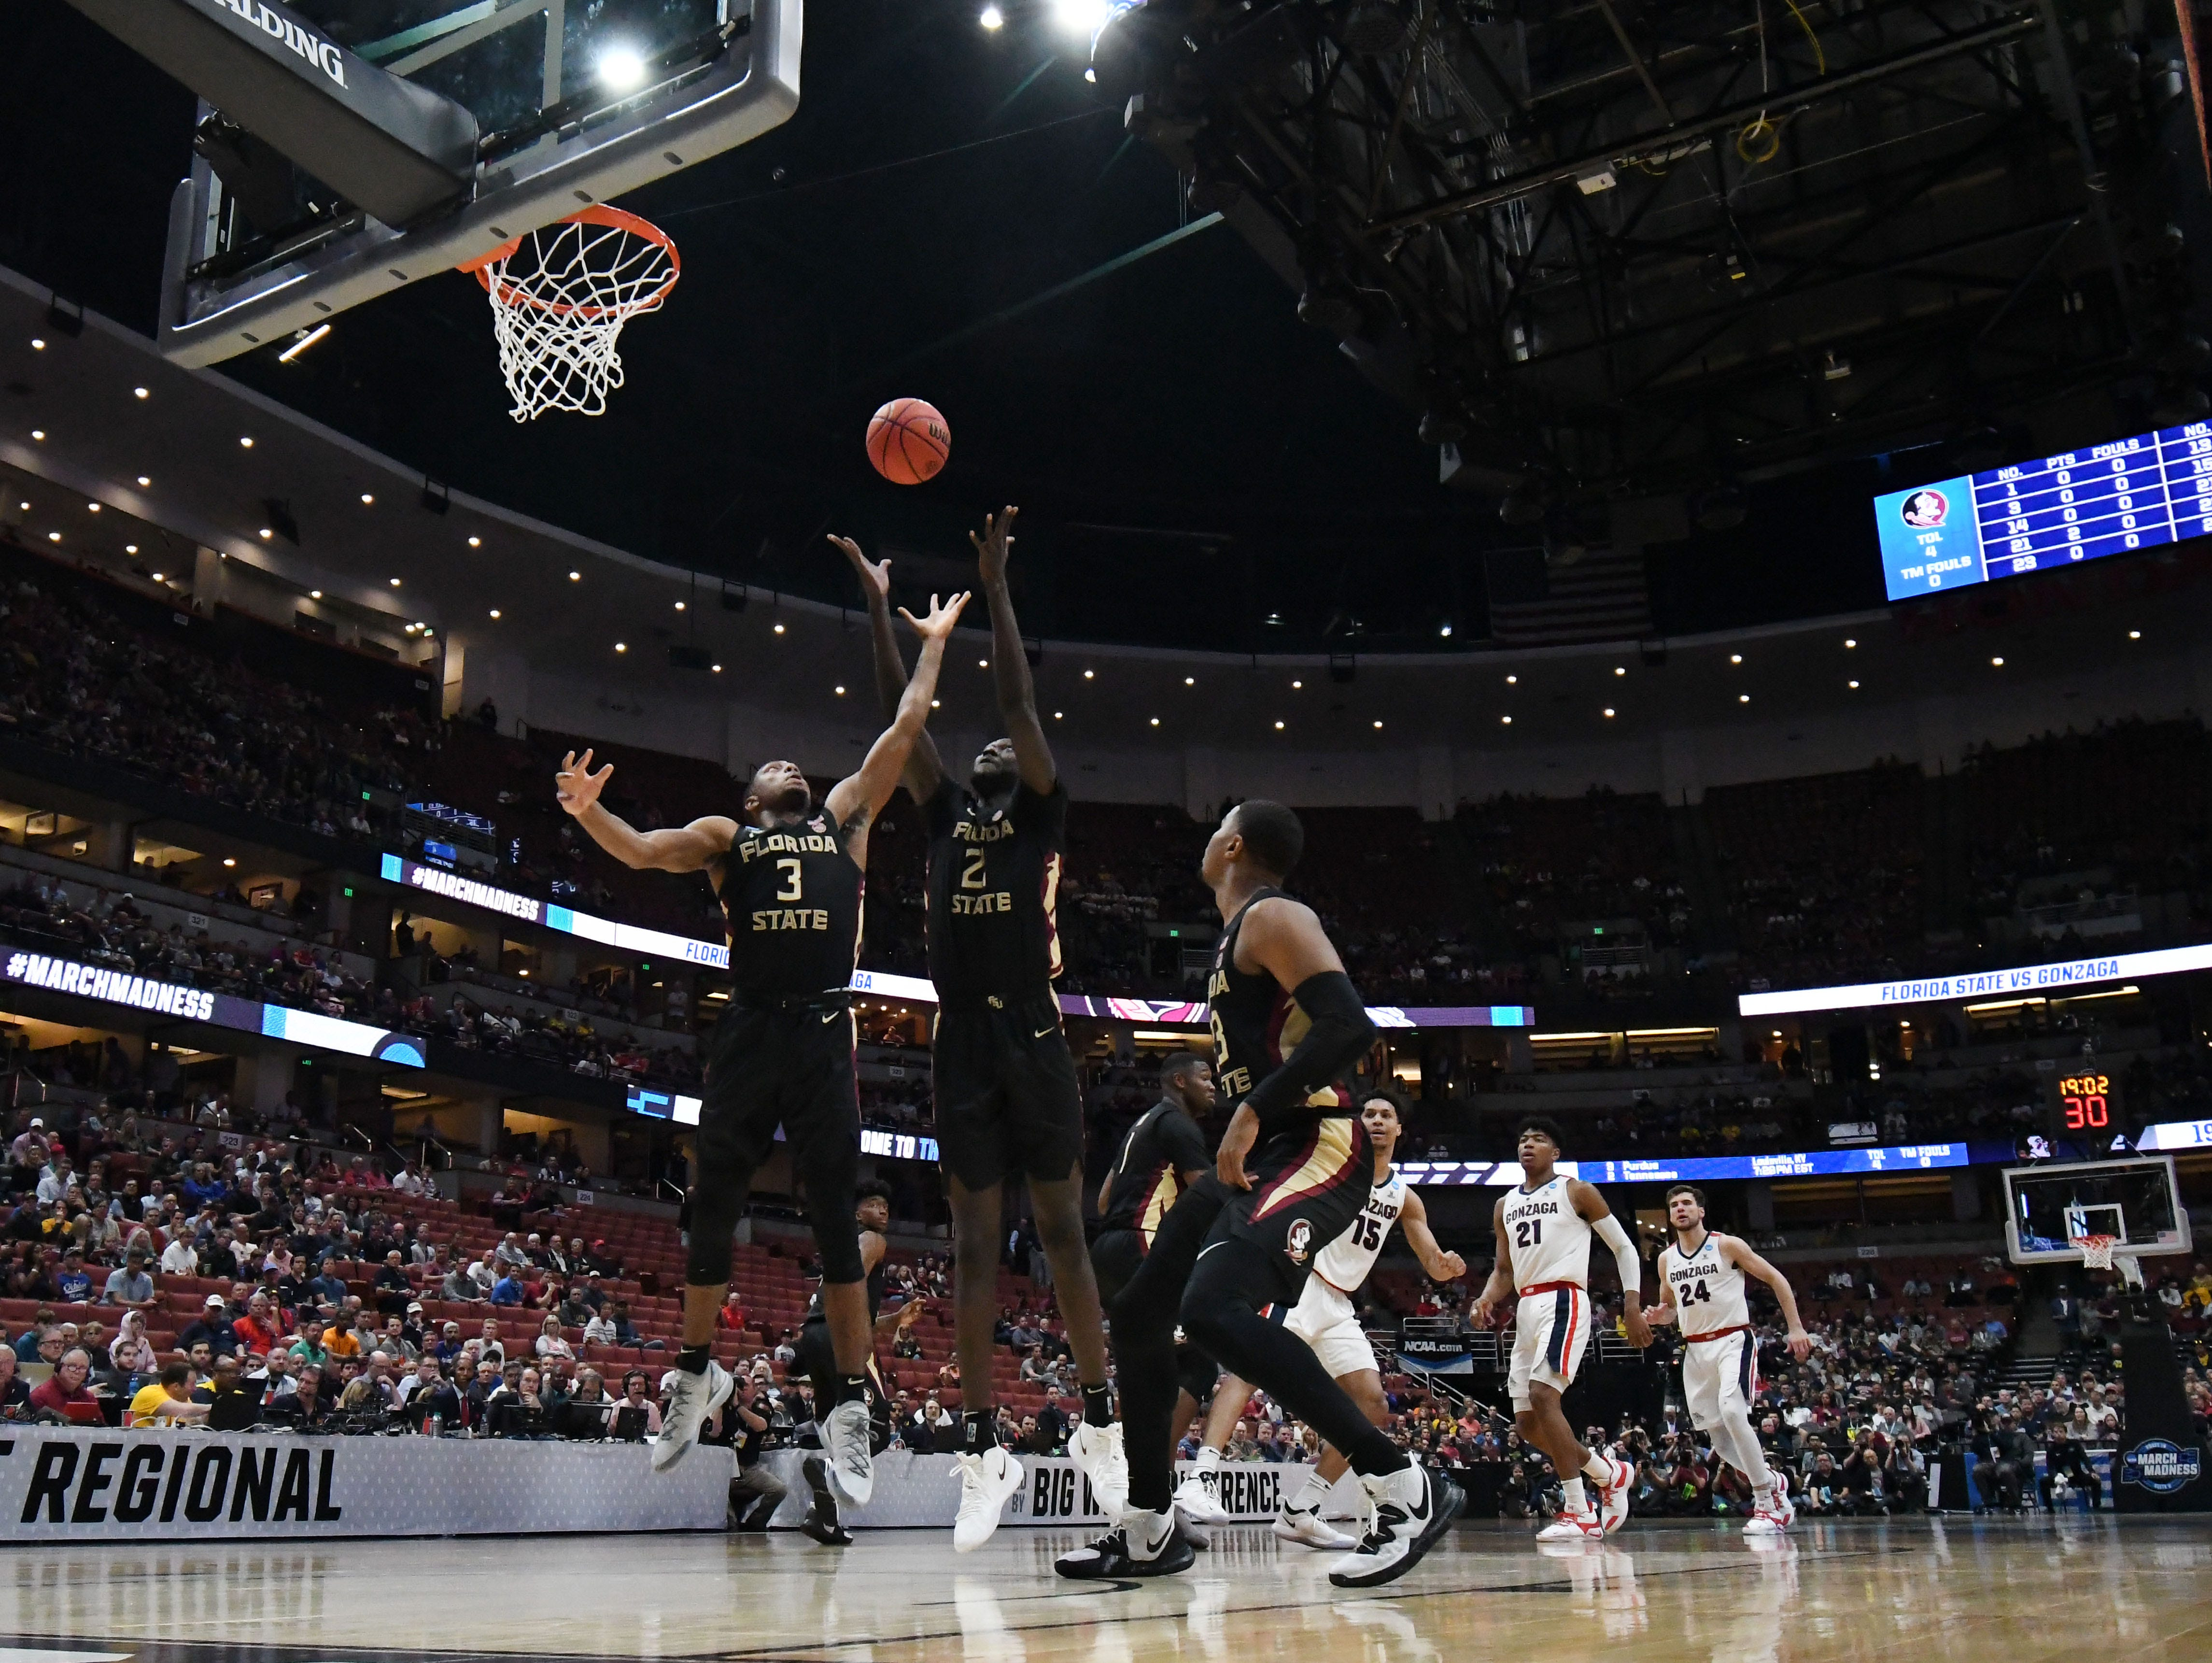 March 28, 2019; Anaheim, CA, USA; Florida State Seminoles guard Trent Forrest (3) and center Christ Koumadje (21) plays for the rebound against Gonzaga Bulldogs during the first half in the semifinals of the west regional of the 2019 NCAA Tournament at Honda Center. Mandatory Credit: Richard Mackson-USA TODAY Sports